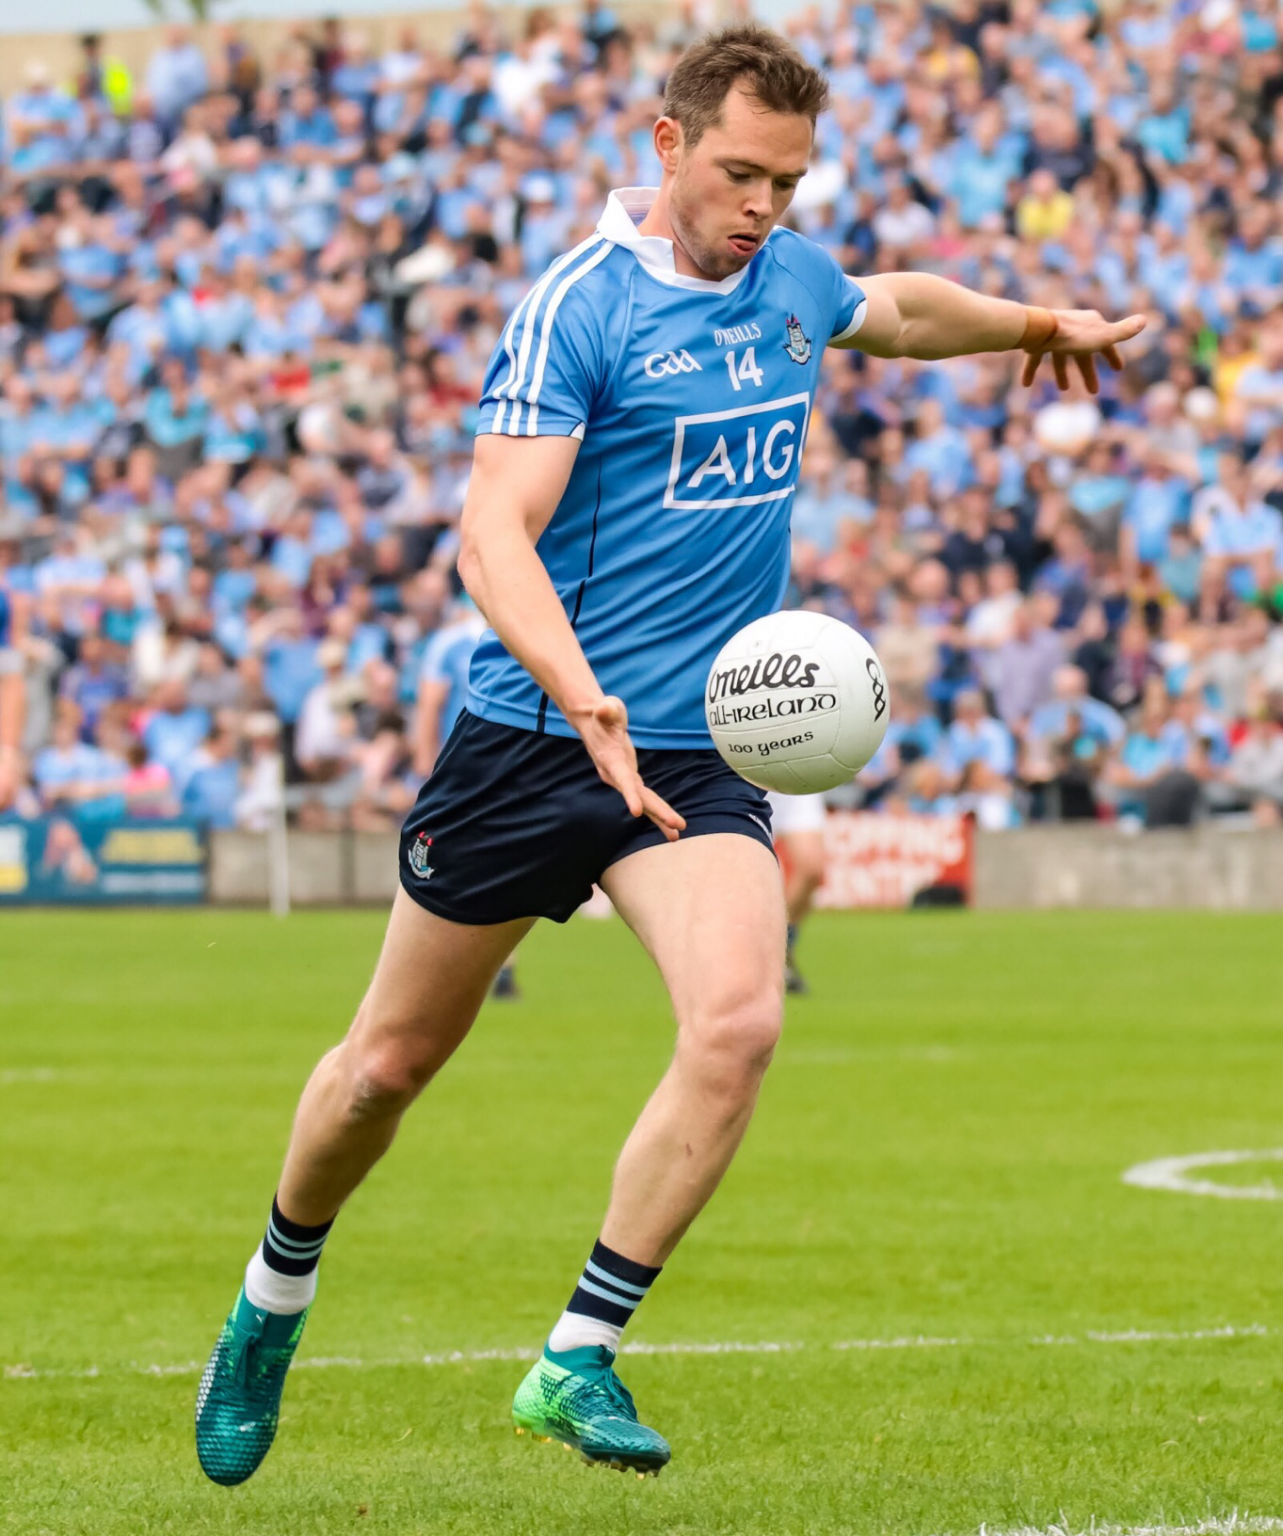 Dublin footballer Dean Rock in a sky blue jersey and navy shorts about to kick a white football